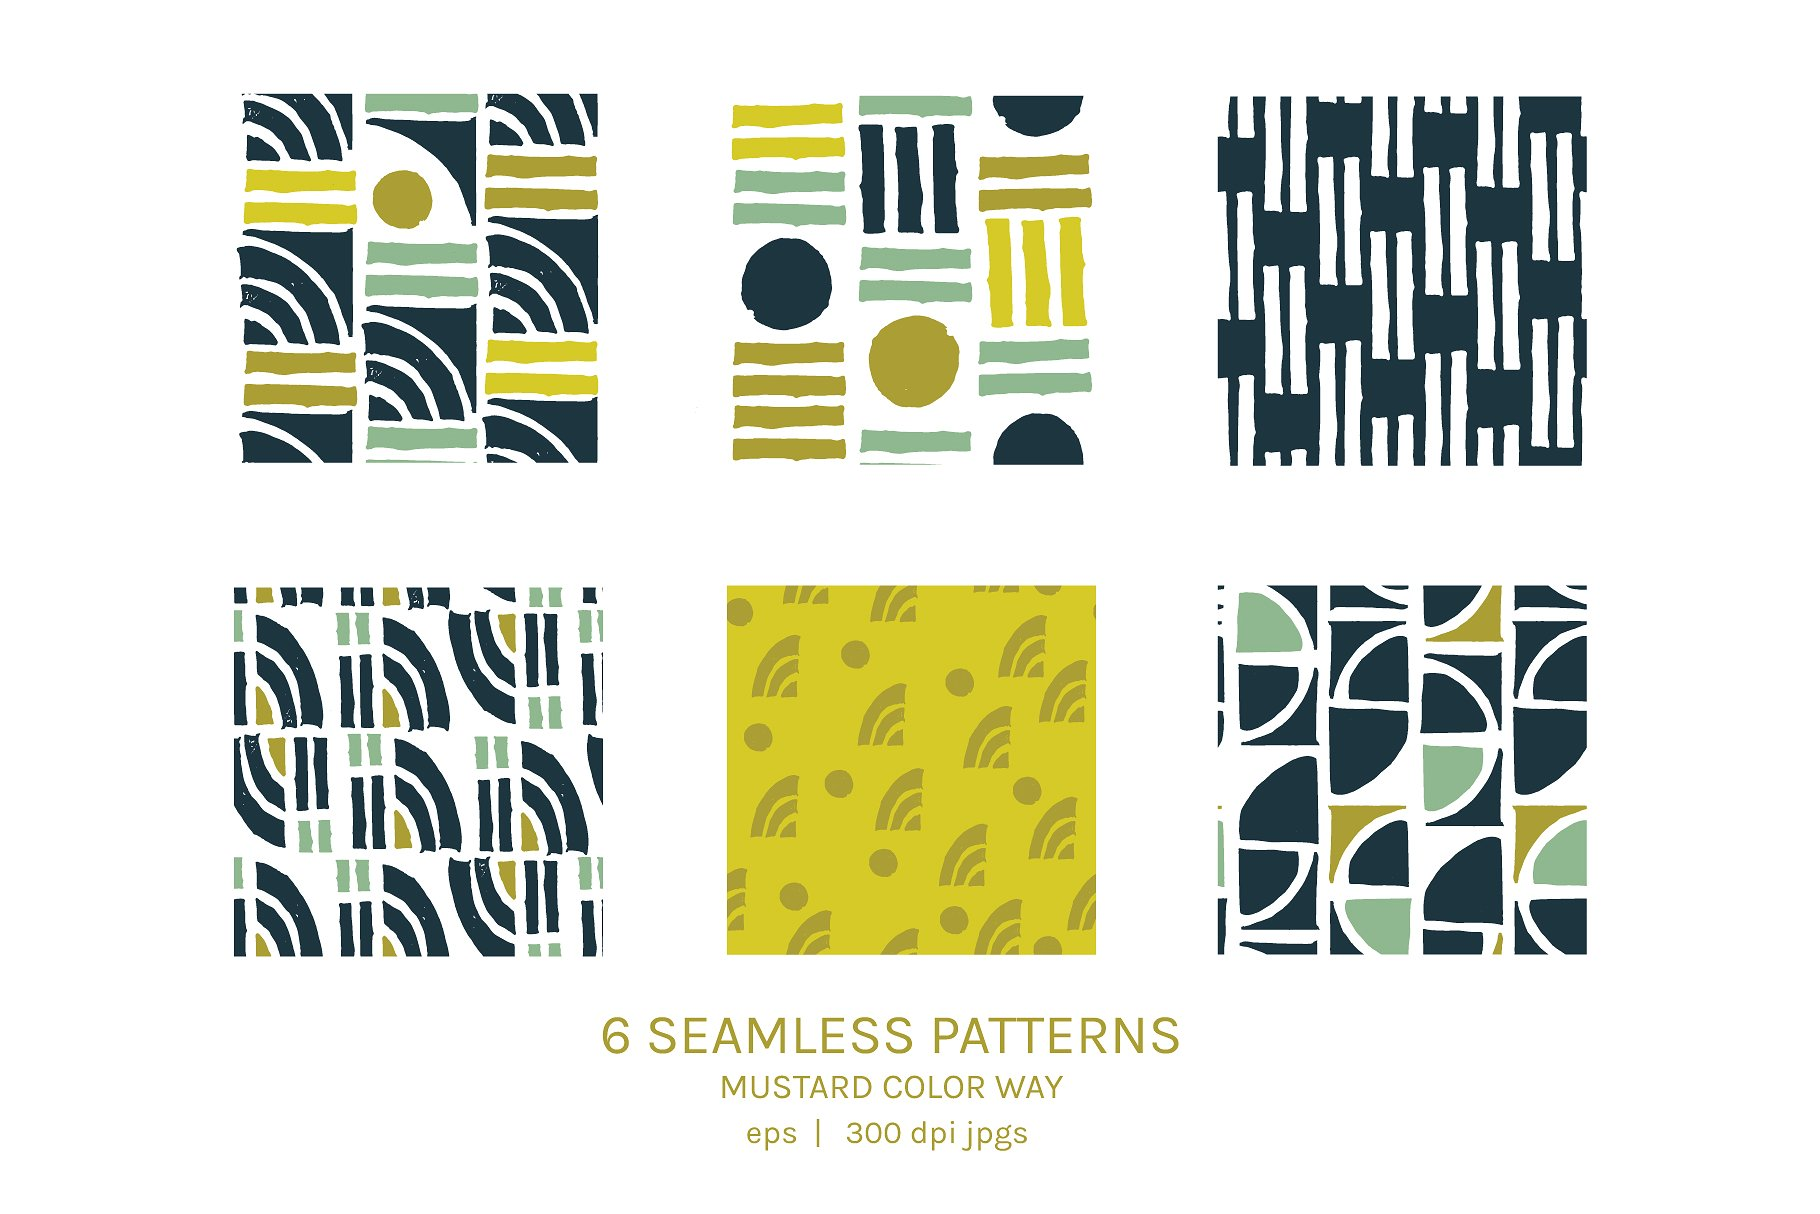 minted-modern_product-images-07-.jpg